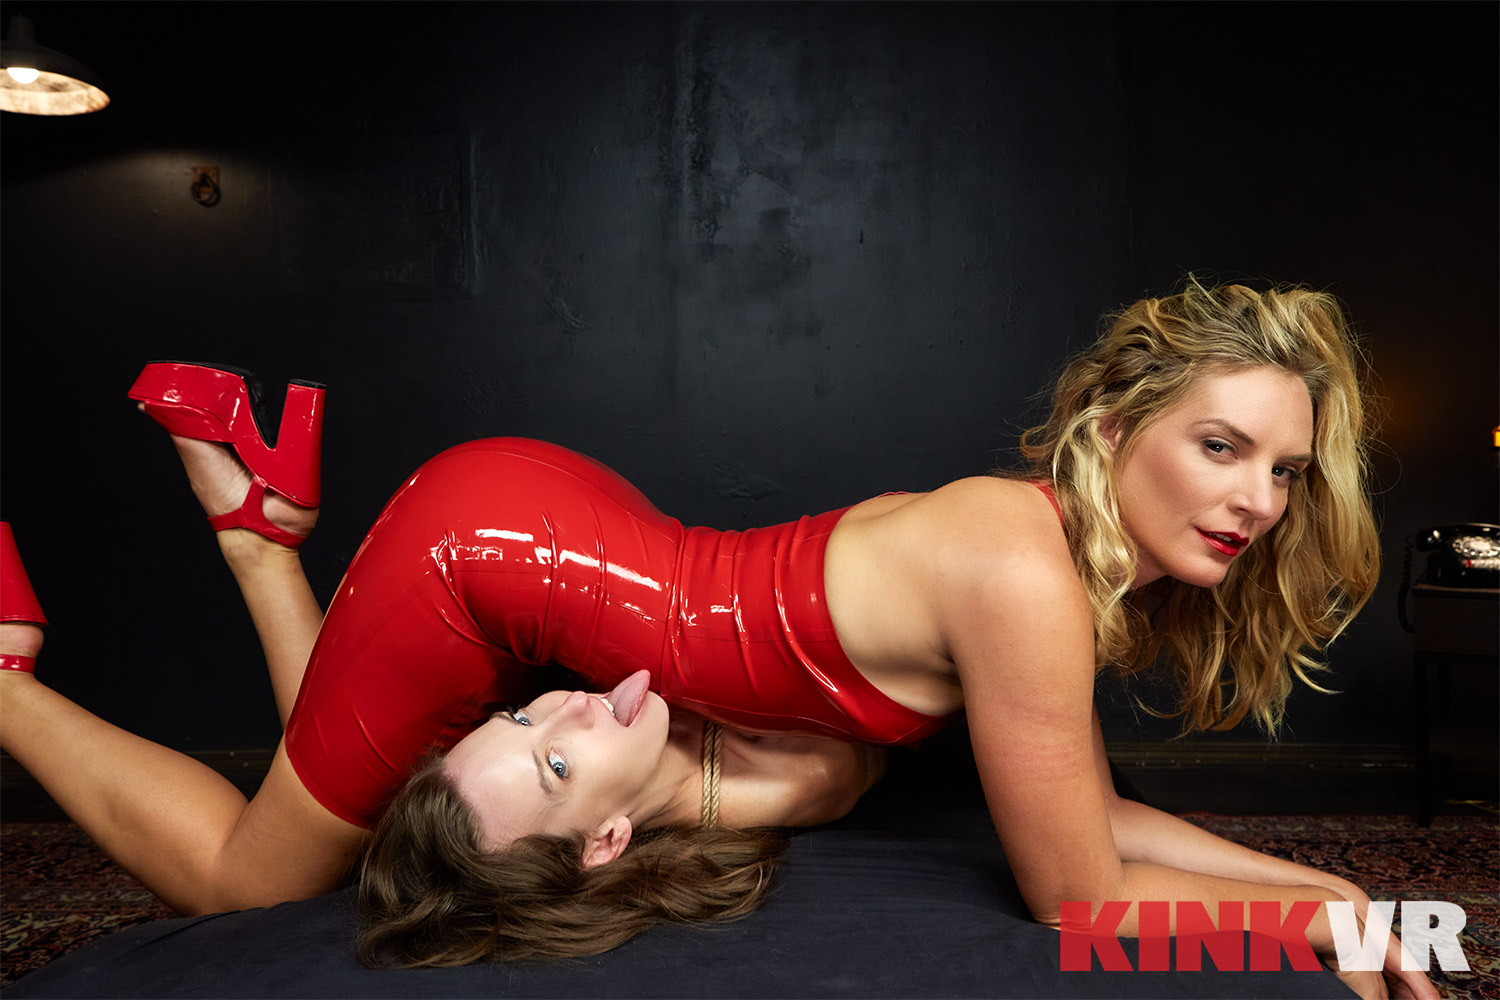 Danger In A Red Dress - Mona Wales VR Porn - Mona Wales Virtual Reality Porn - Elise Graves VR Porn - Elise Graves Virtual Reality Porn